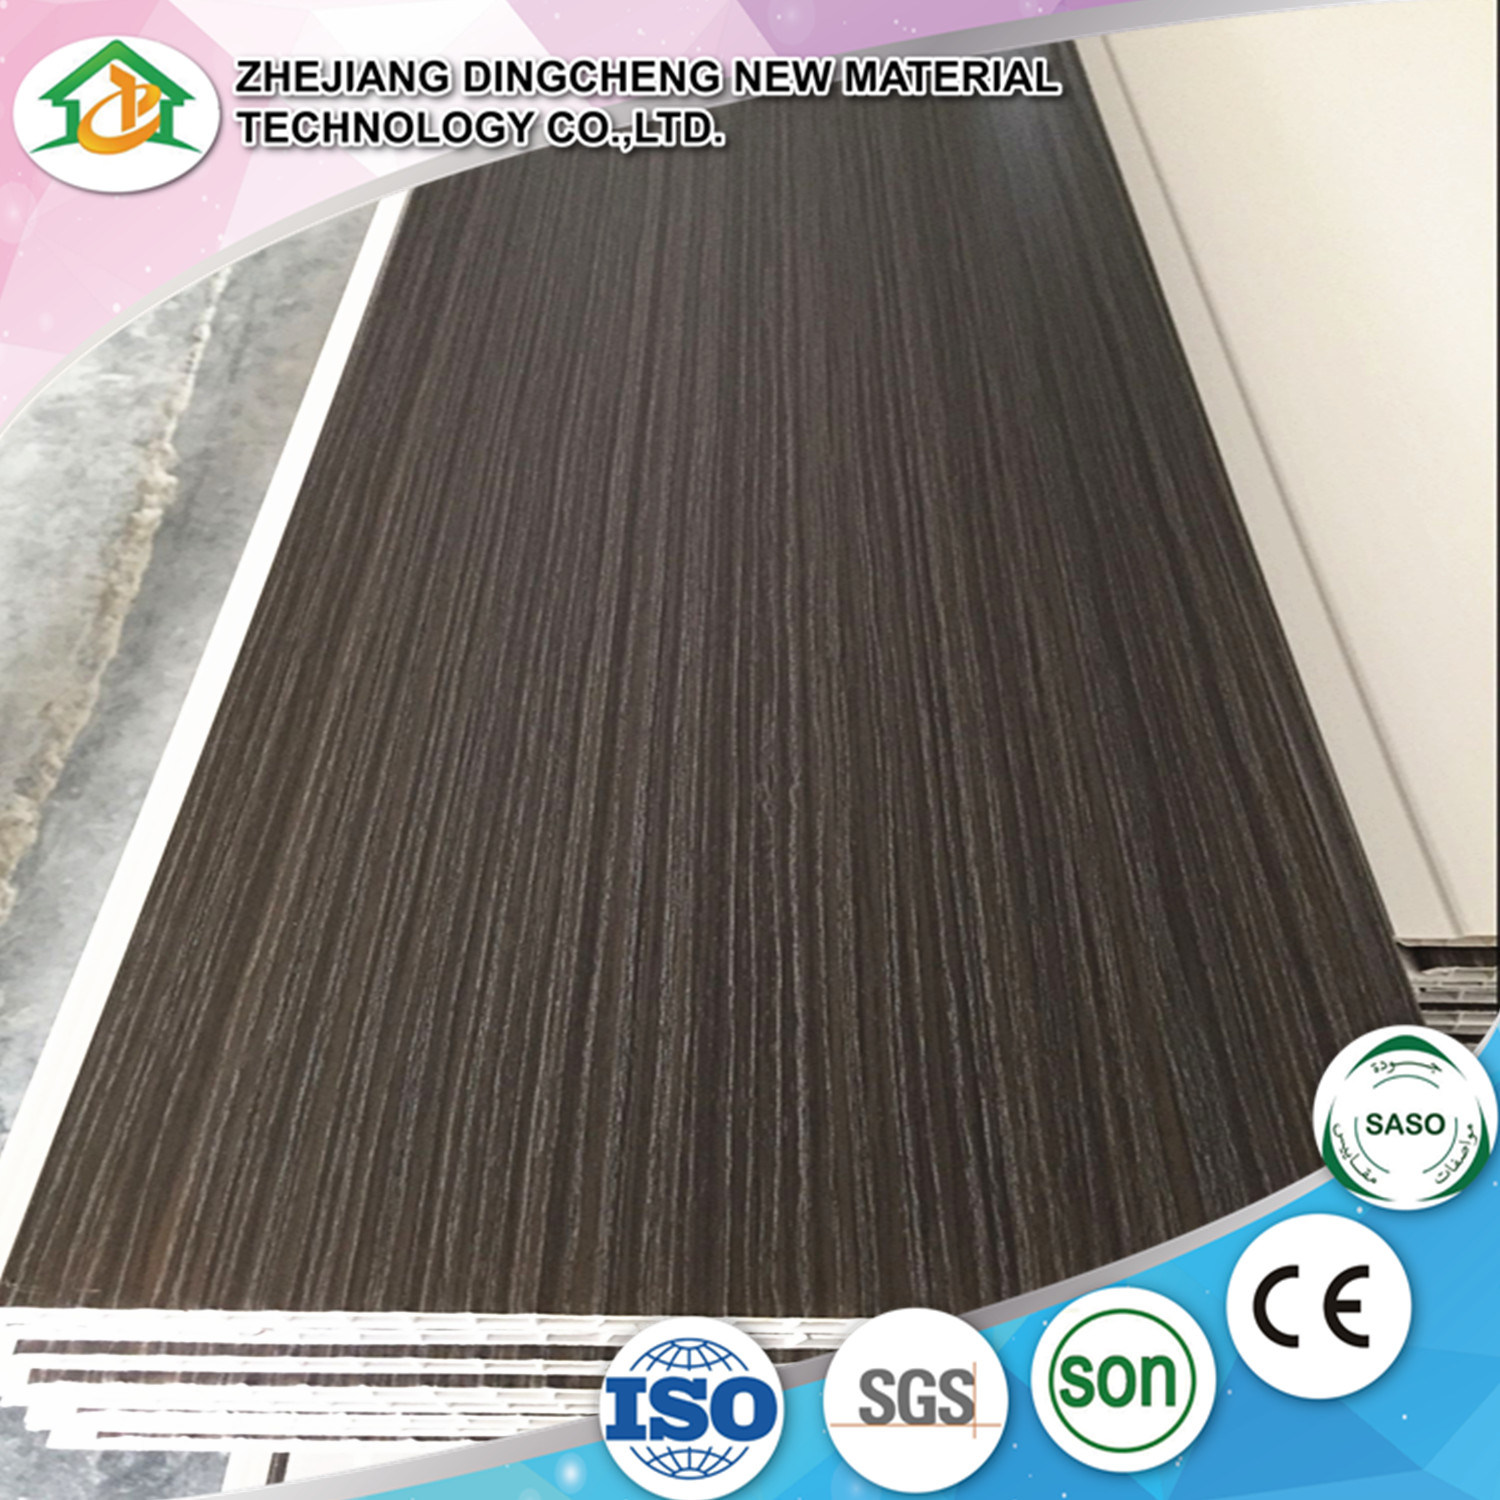 300mm Pvc Strong Wall Panel Panels Ceiling Decoration Dc 36